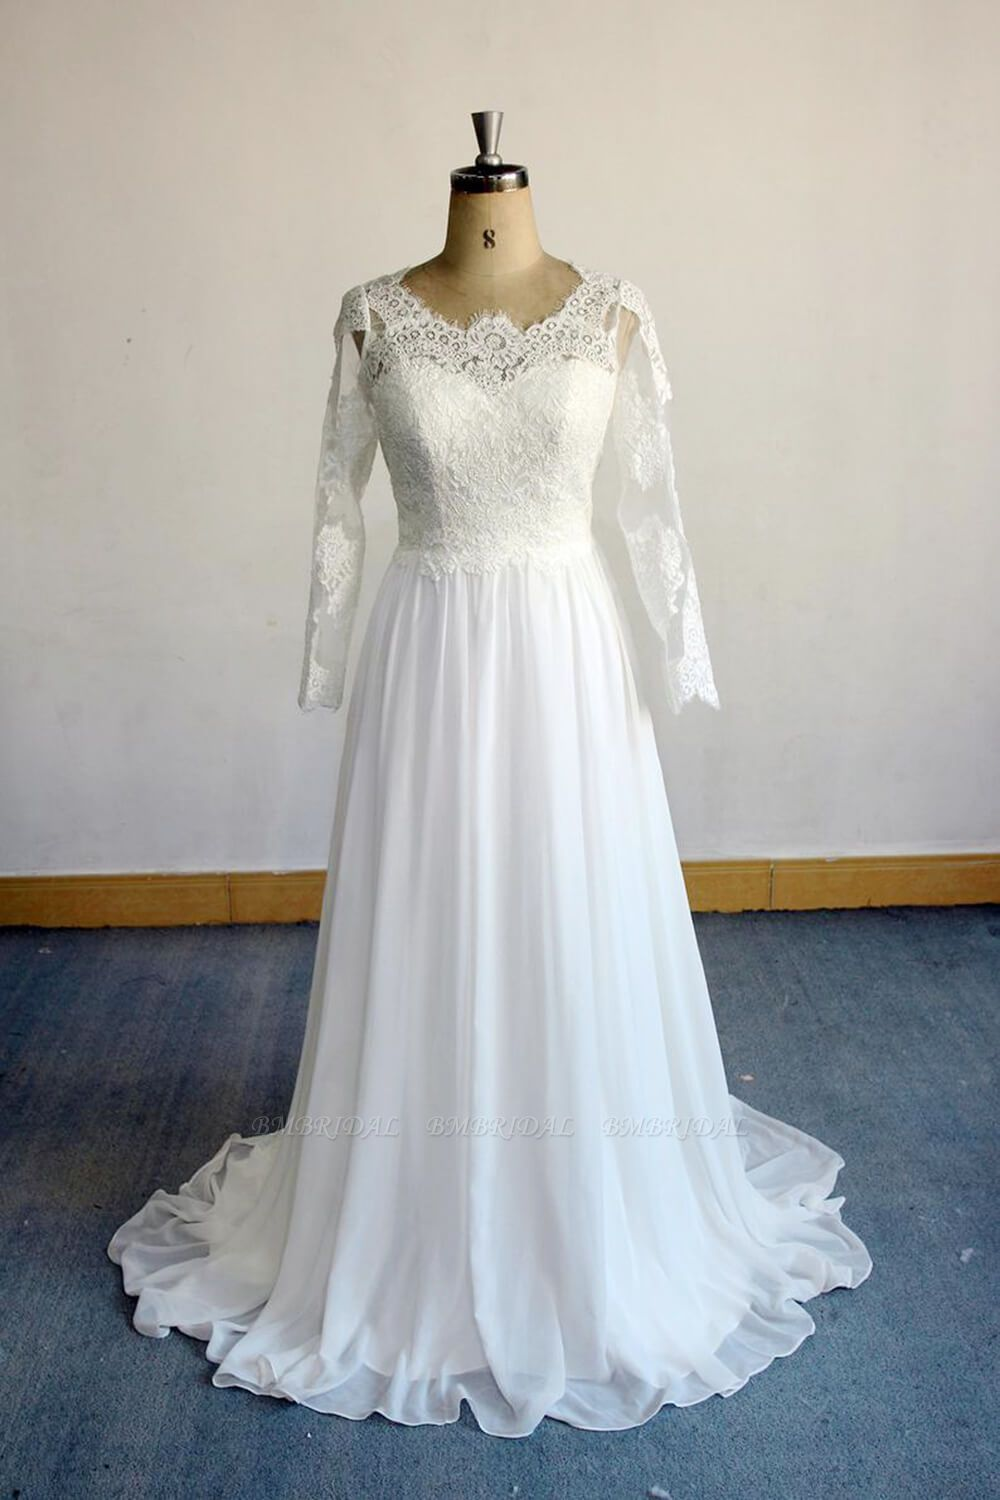 Elegant Longsleeves Appliques Lace Wedding Dress White Chiffon A-line Bridal Gowns On Sale